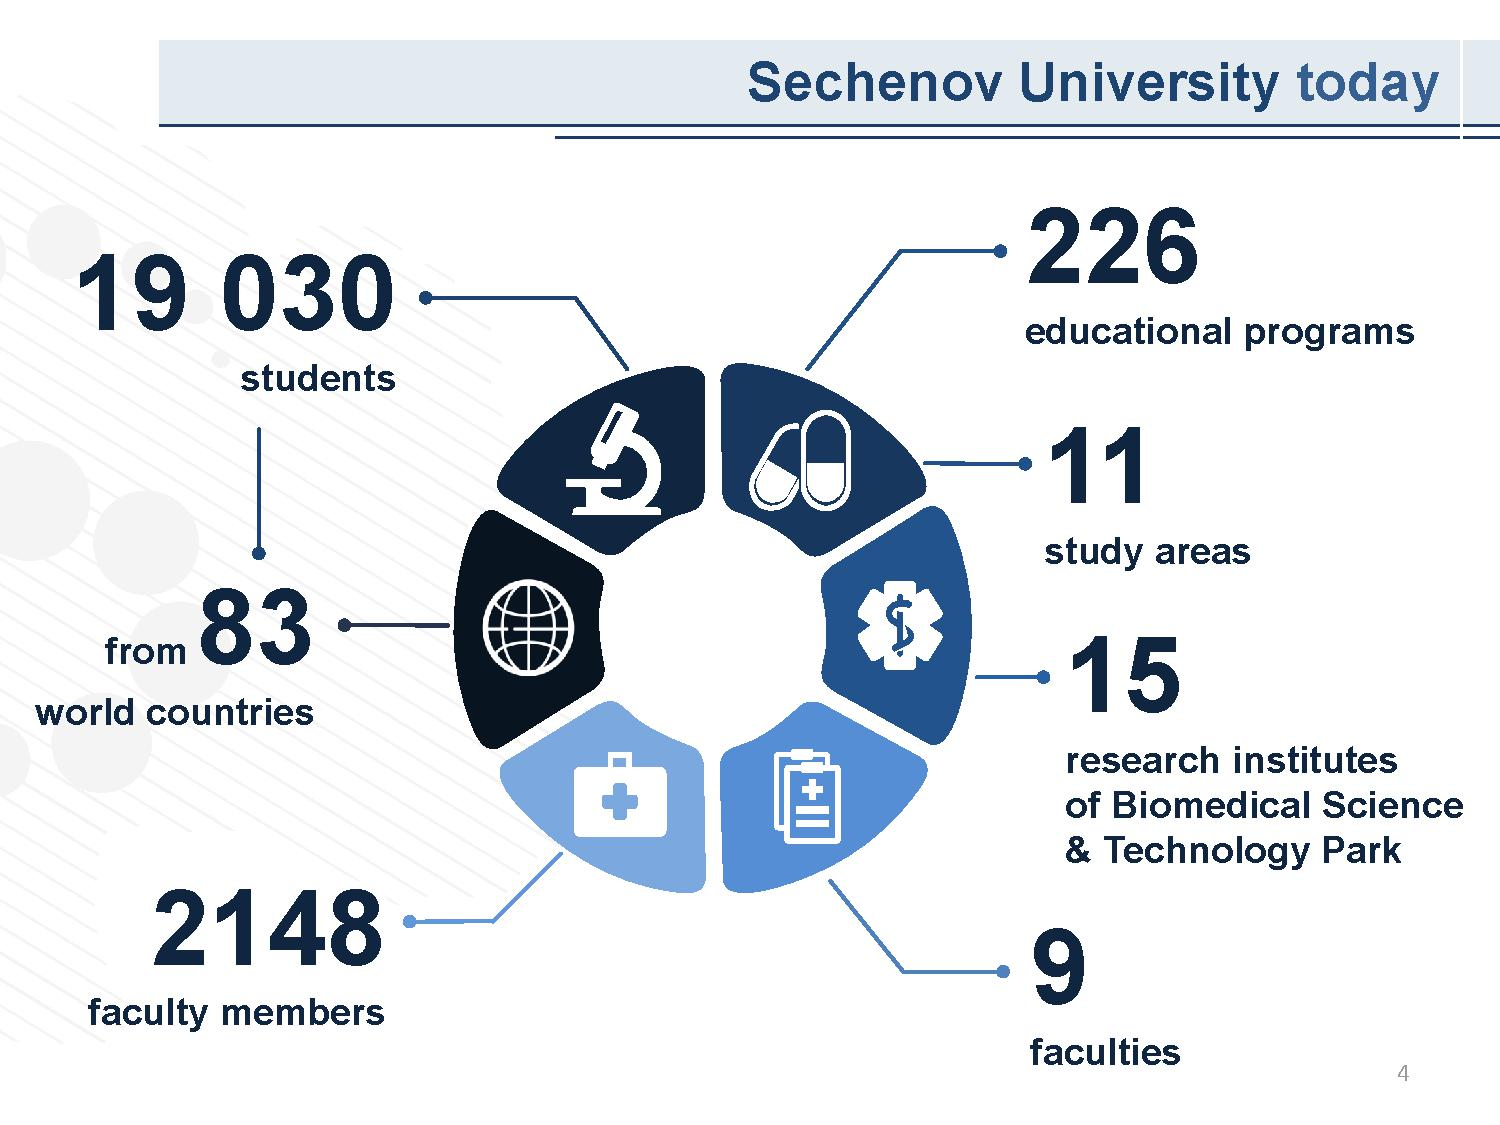 Sechenov University today